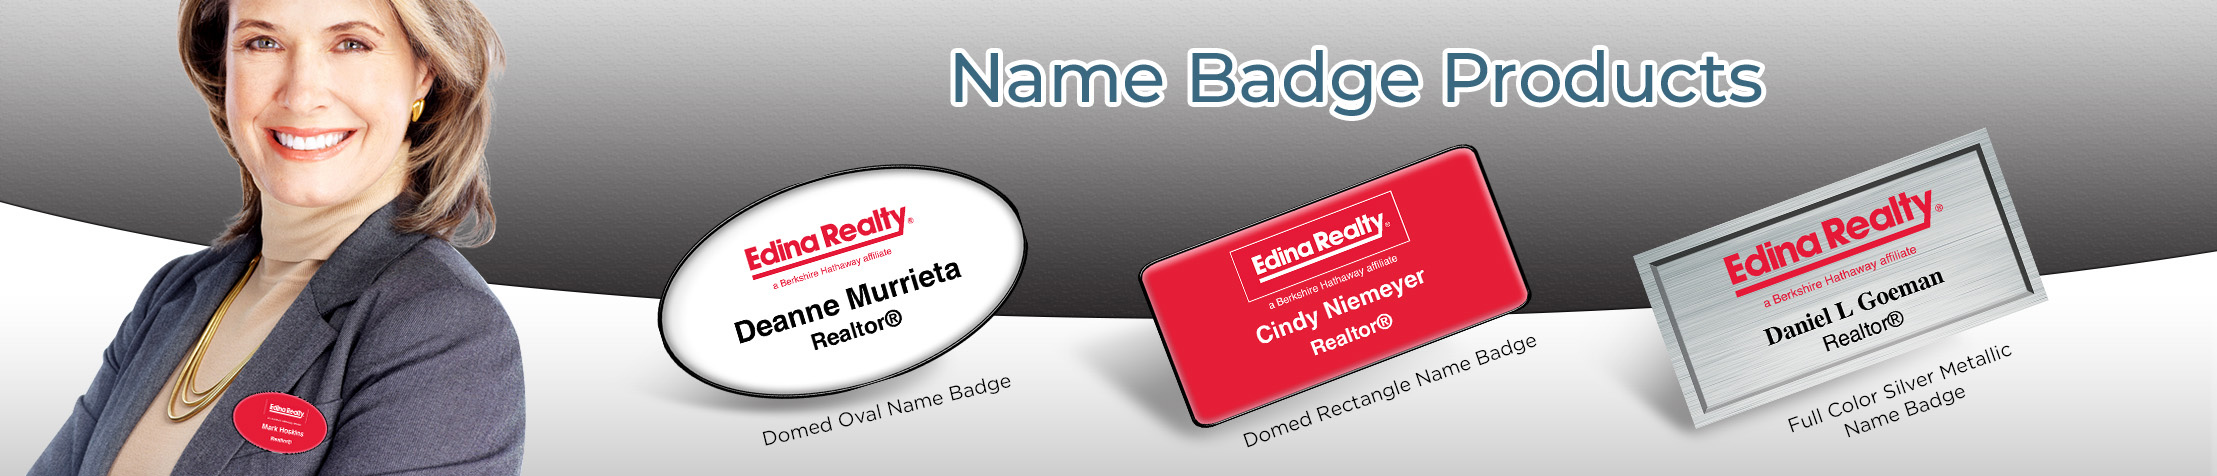 Edina Realty  Name Badge Products - Edina Realty Name Tags for Realtors | BestPrintBuy.com